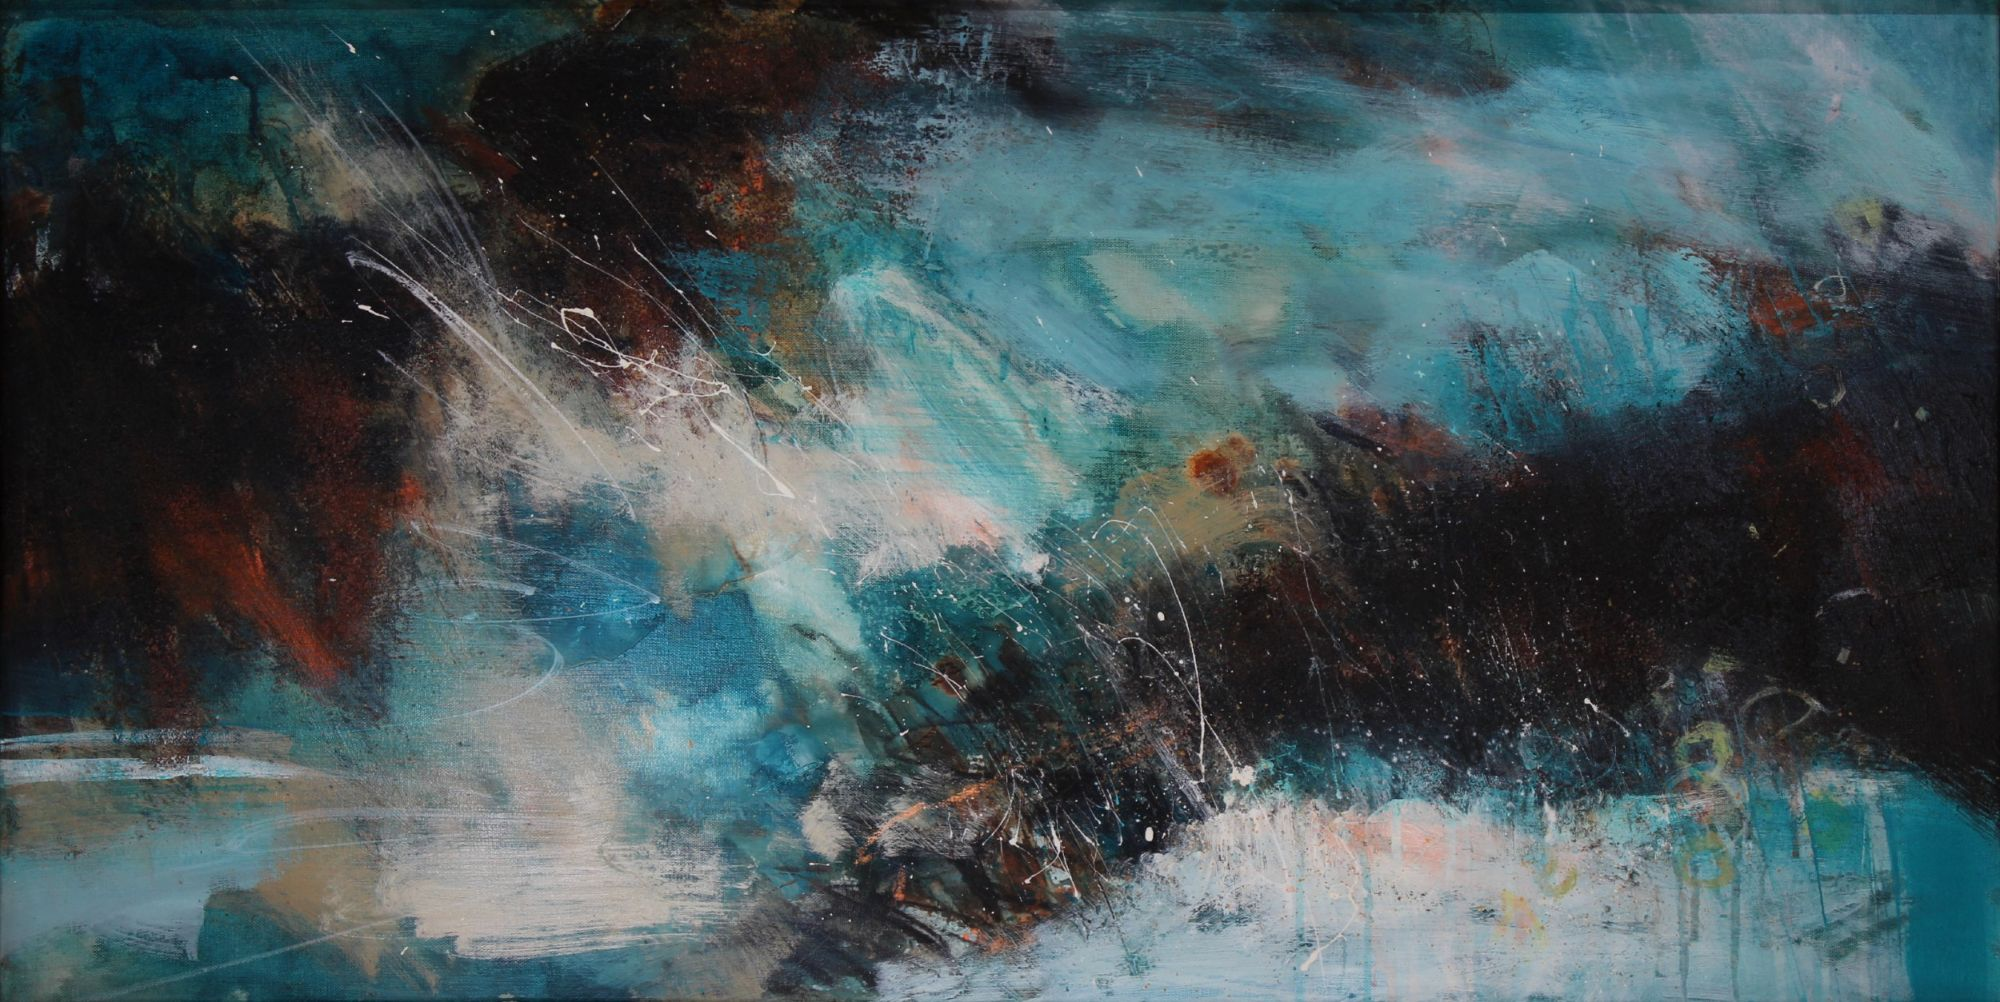 abstract turquiose white and rust painting of sea and rocks above a chestnut leather sofa